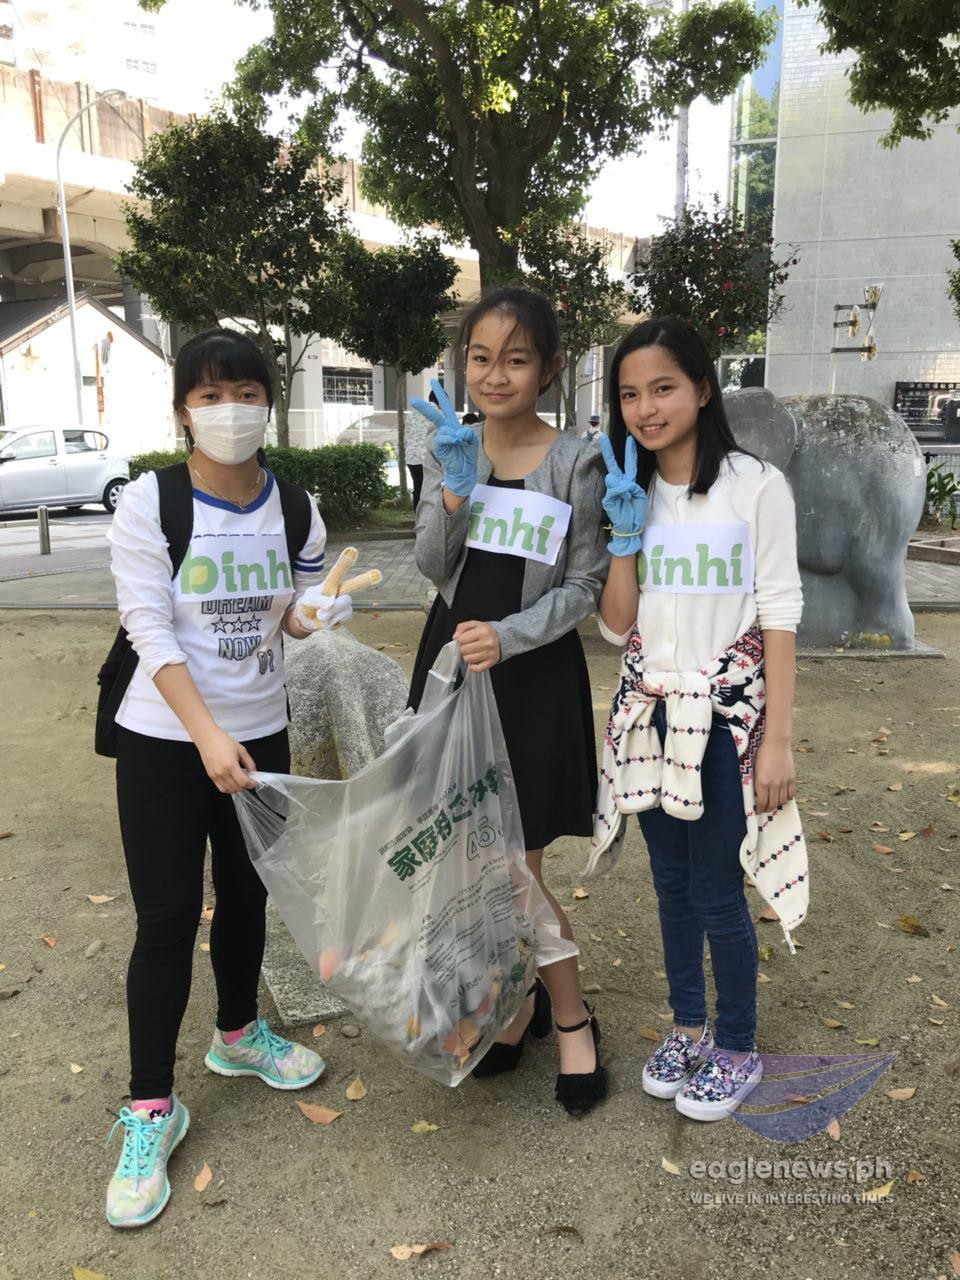 In photos:   Young INC members in Japan help clean up public places, join worldwide clean-up drive